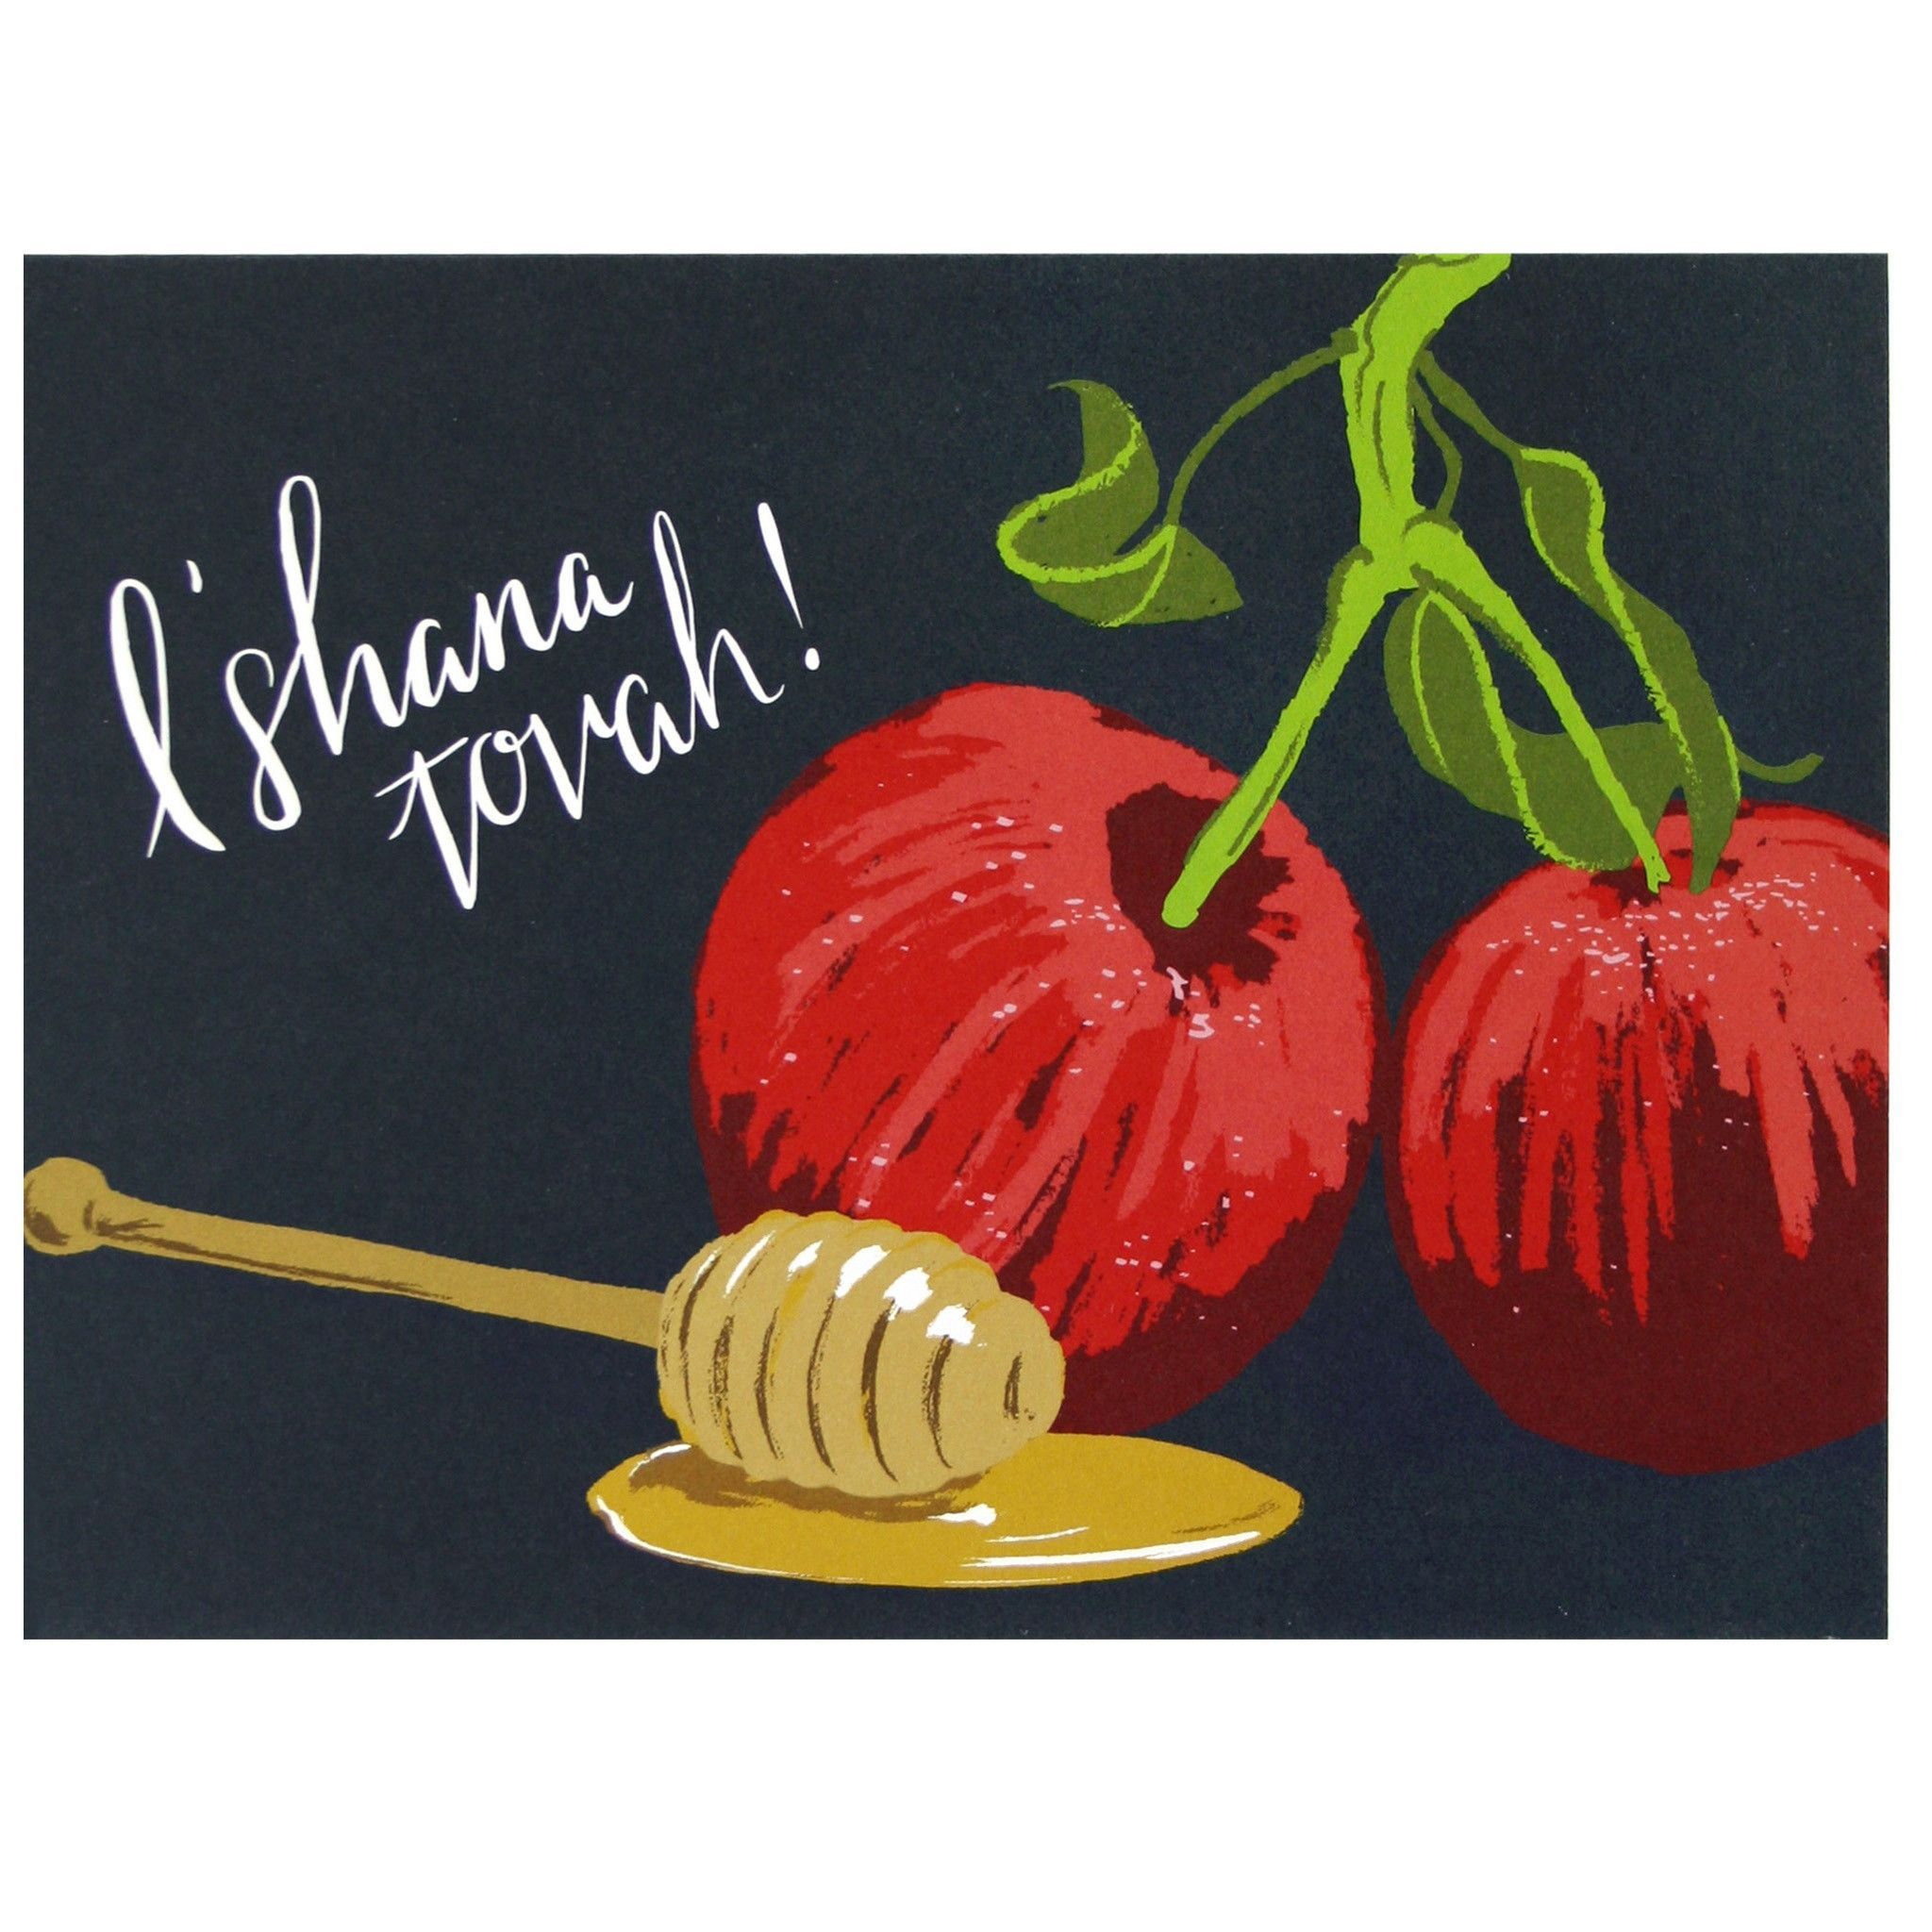 Apples honey rosh hashanah card shana tovah rosh hashanah and honey apples honey rosh hashanah card m4hsunfo